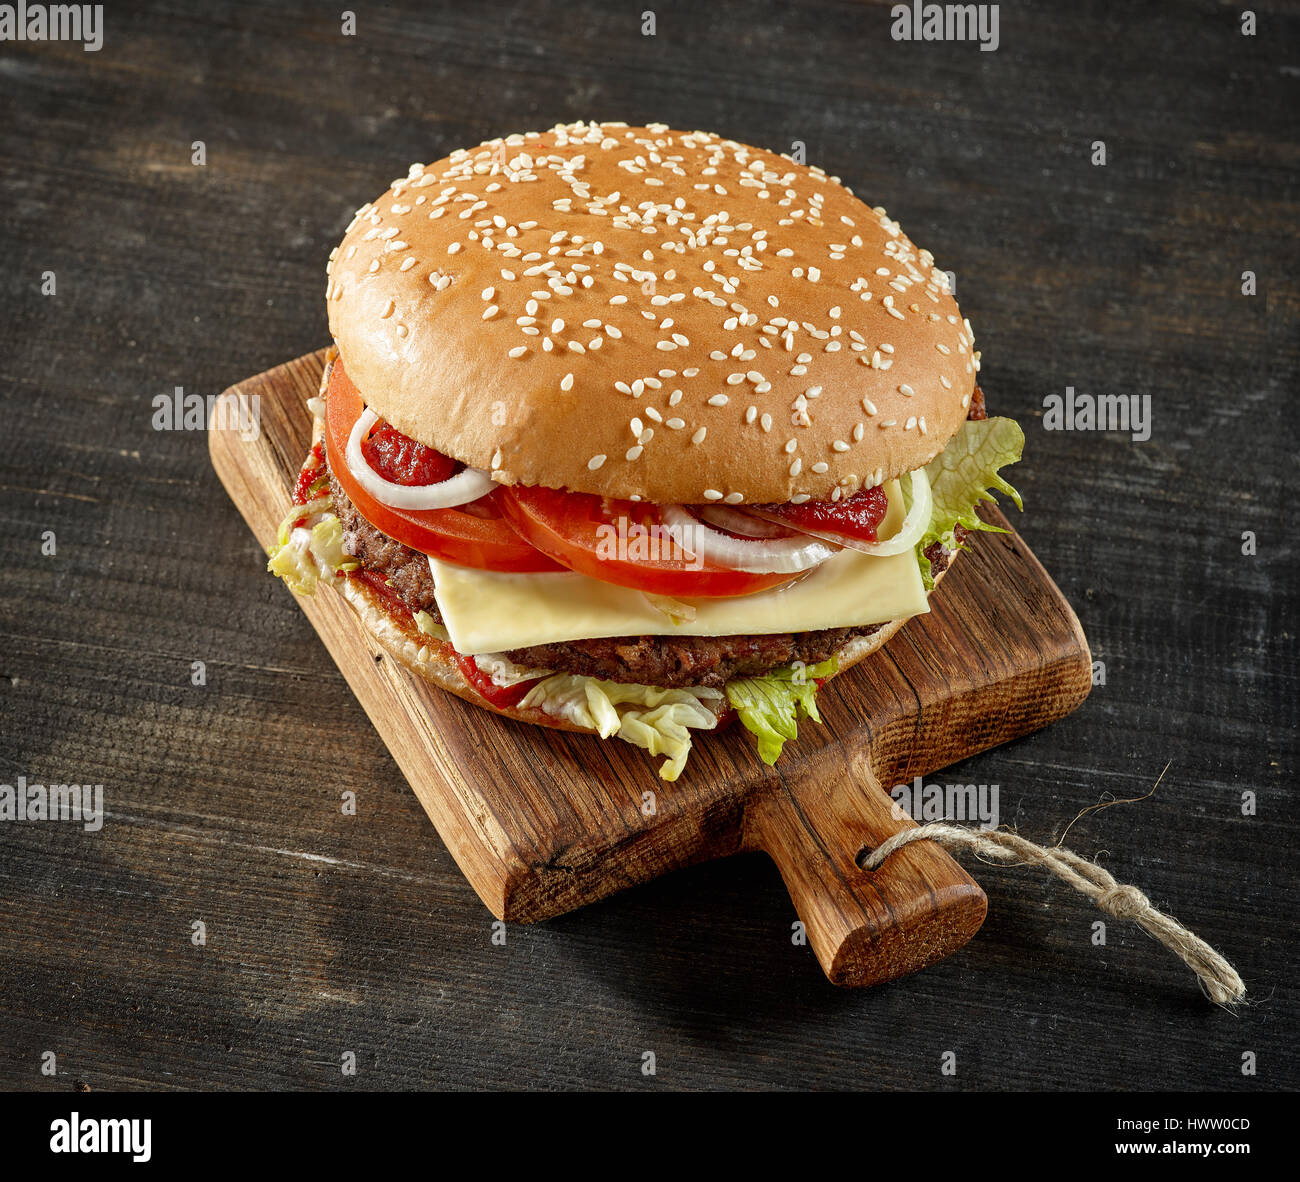 fresh tasty burger on dark wooden table - Stock Image